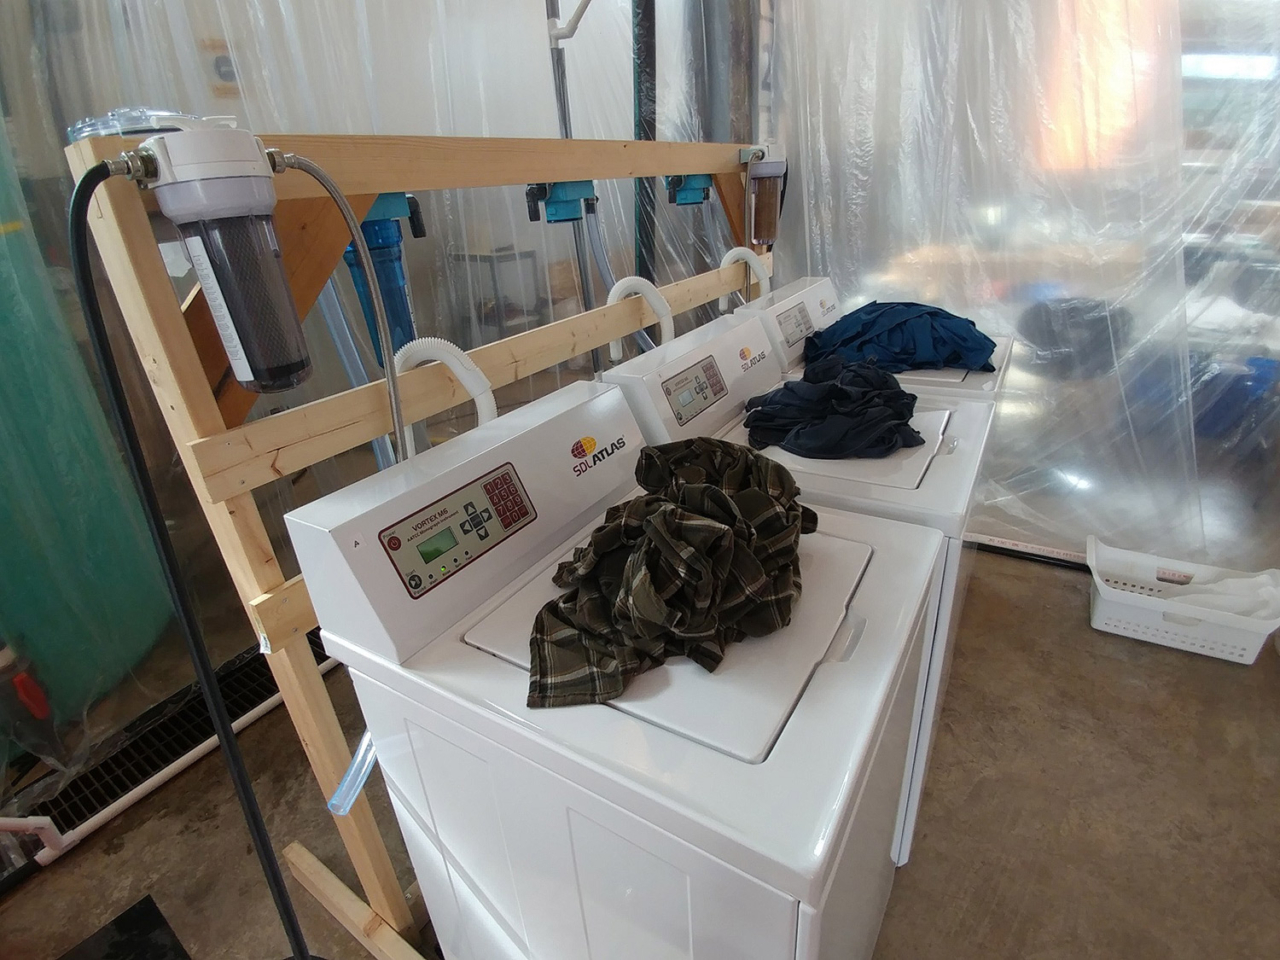 The laundry study was carried out with commercial-grade test washers that simulate a cycle in a typical home washing machine. Photo: Mathew Watkins